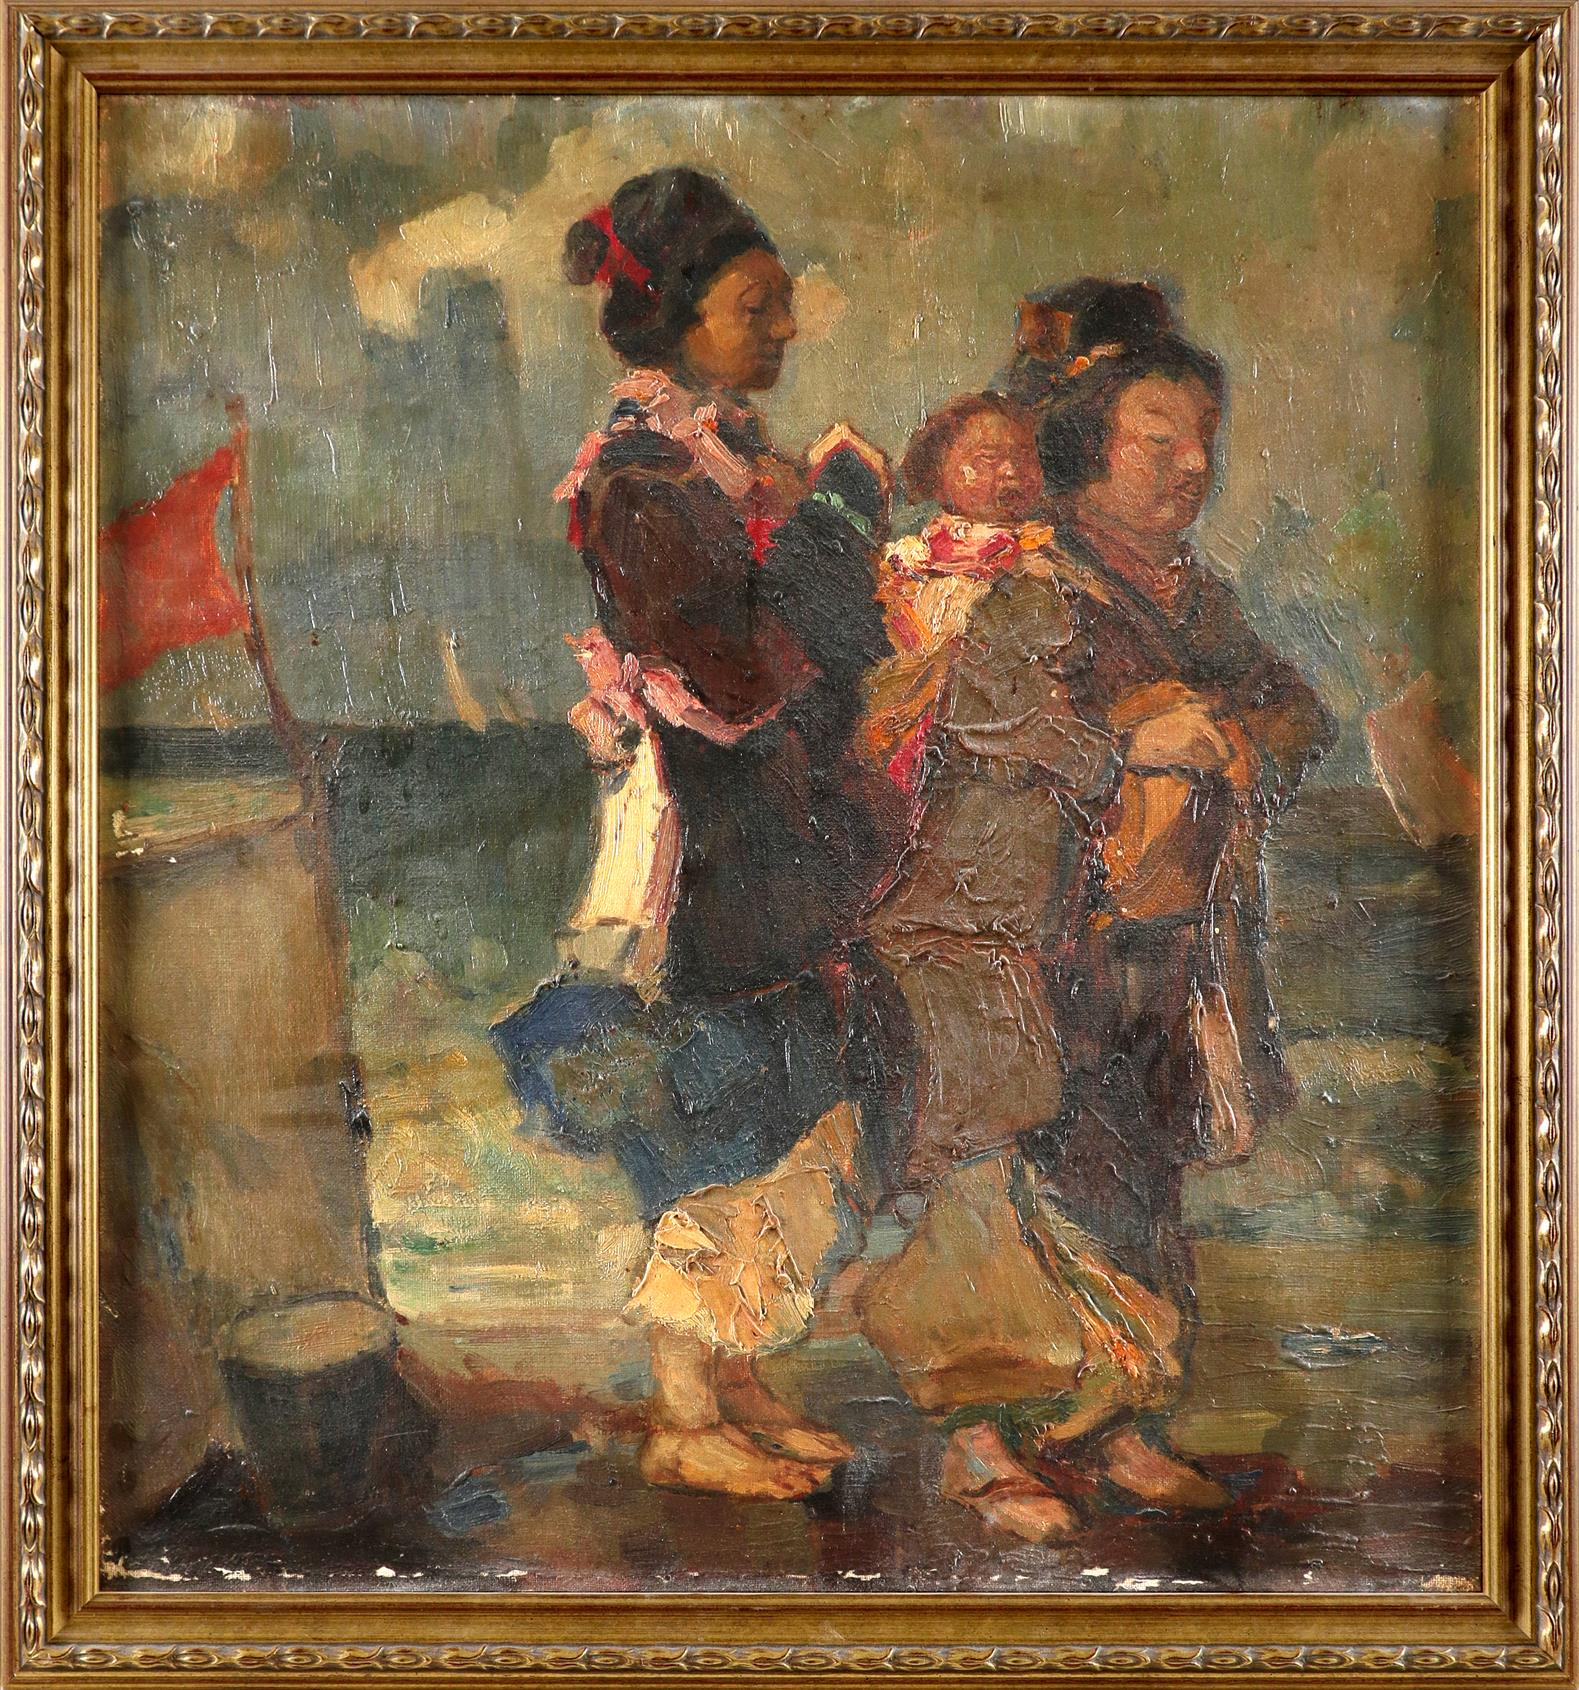 Continental School 20th Century Two women and a child on a beach Oil on canvas 52.8 x 48cm - Image 2 of 3